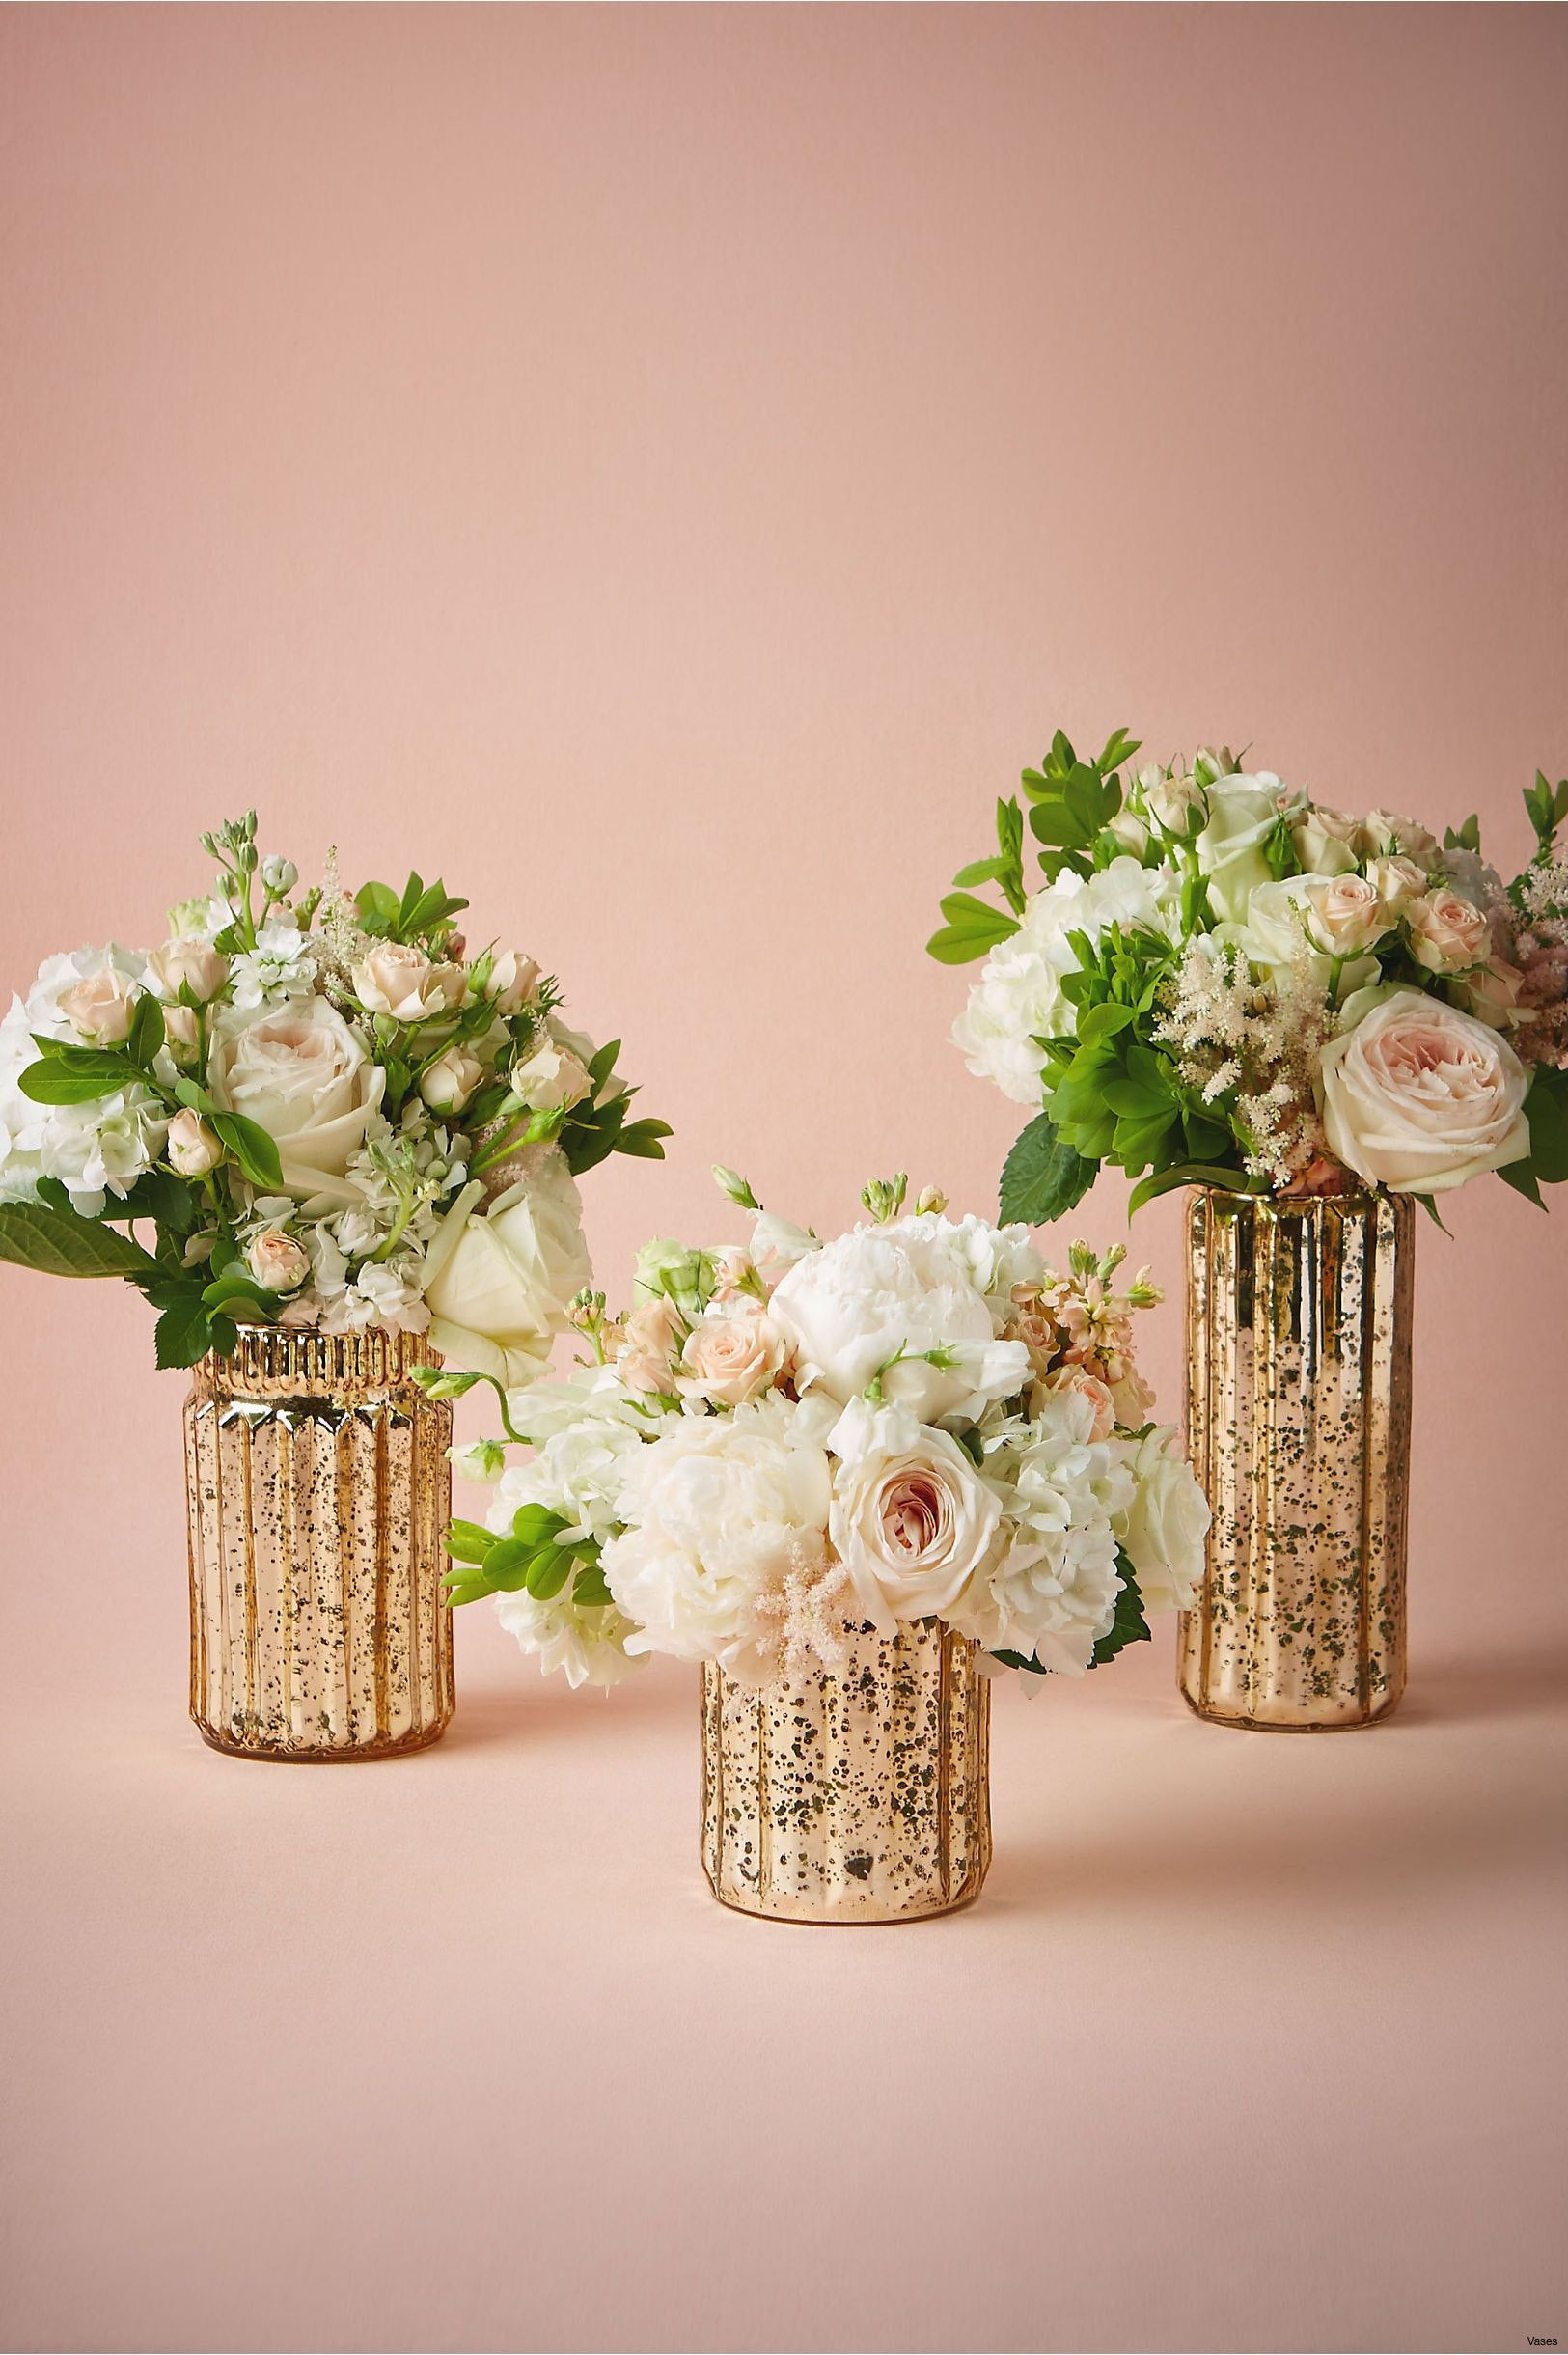 cheap 9 inch cylinder vase of 23 tall cylinder vases the weekly world in flowers decorations for weddings popular 6625 1h vases mercury glass